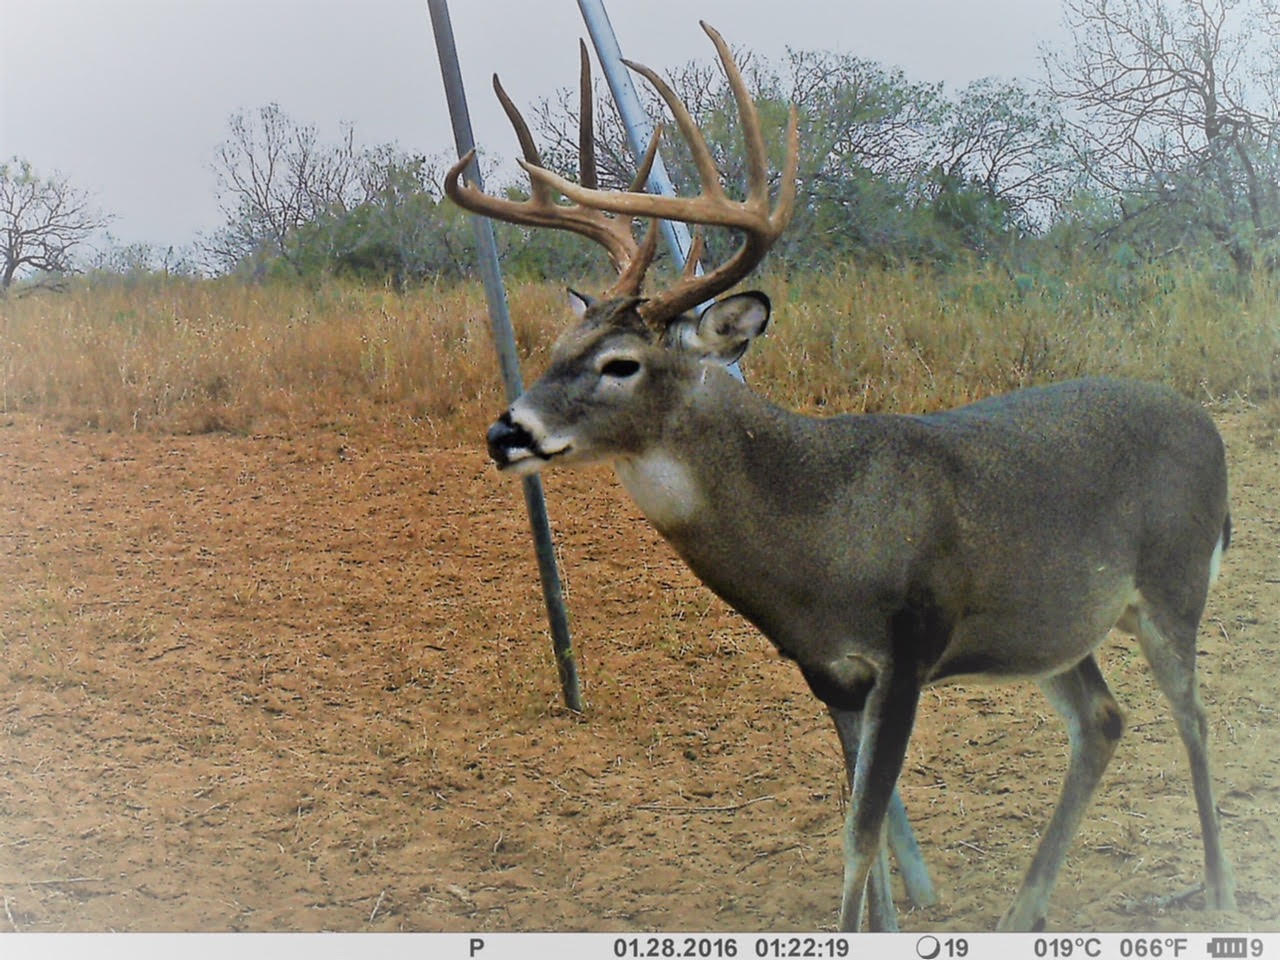 I am off to the ranch next week for a couple weeks before Christmas. We are starting to see the mature bucks moving and the weather forecast looks good. I will keep posting on FB and will send Out a couple updates when I can. Best, Brian  - 12/1/17